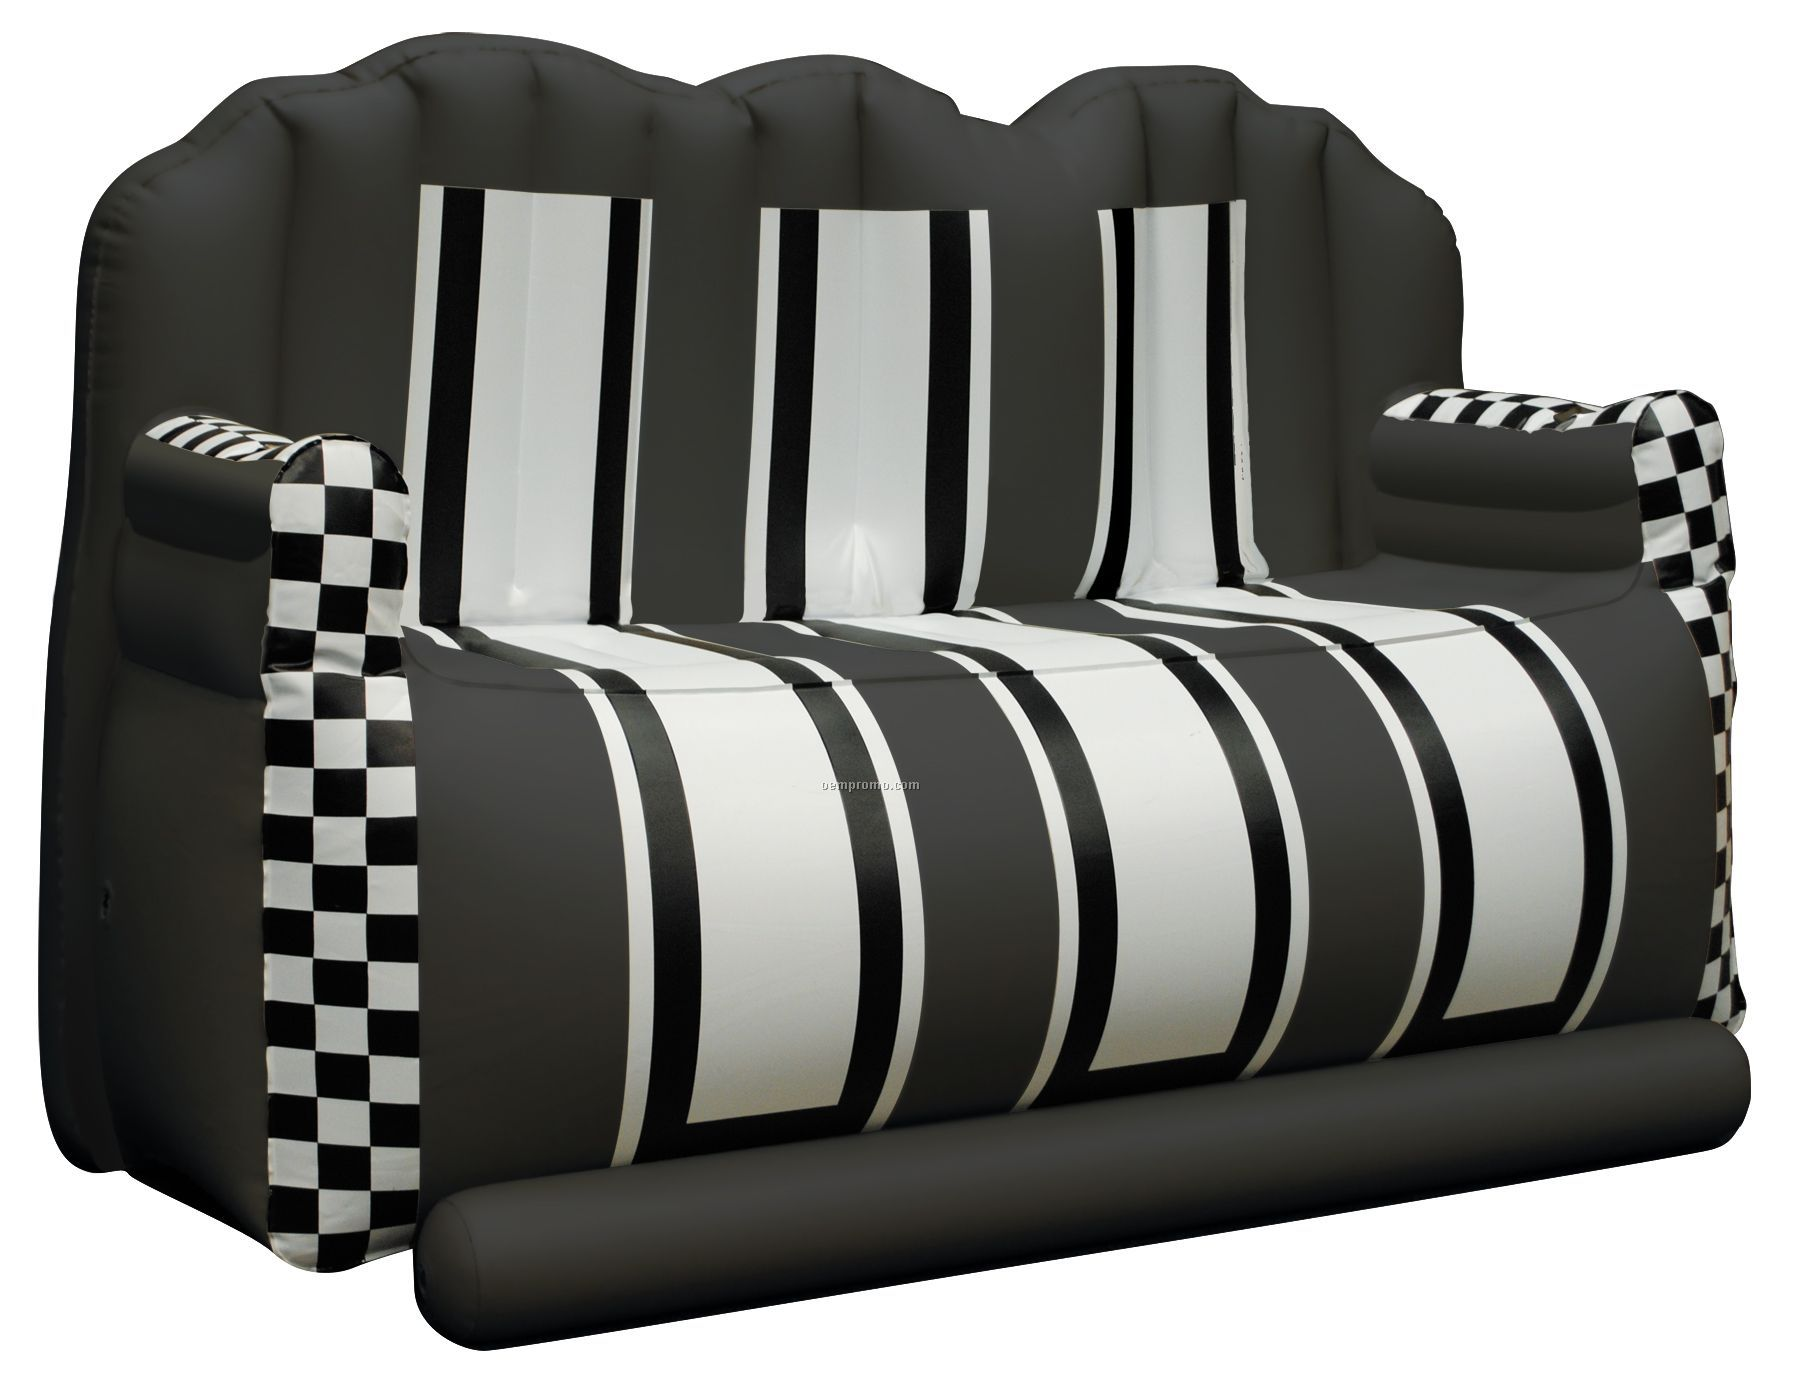 Inflate A Seat Quot Couch Quot Black White Black With Checkered